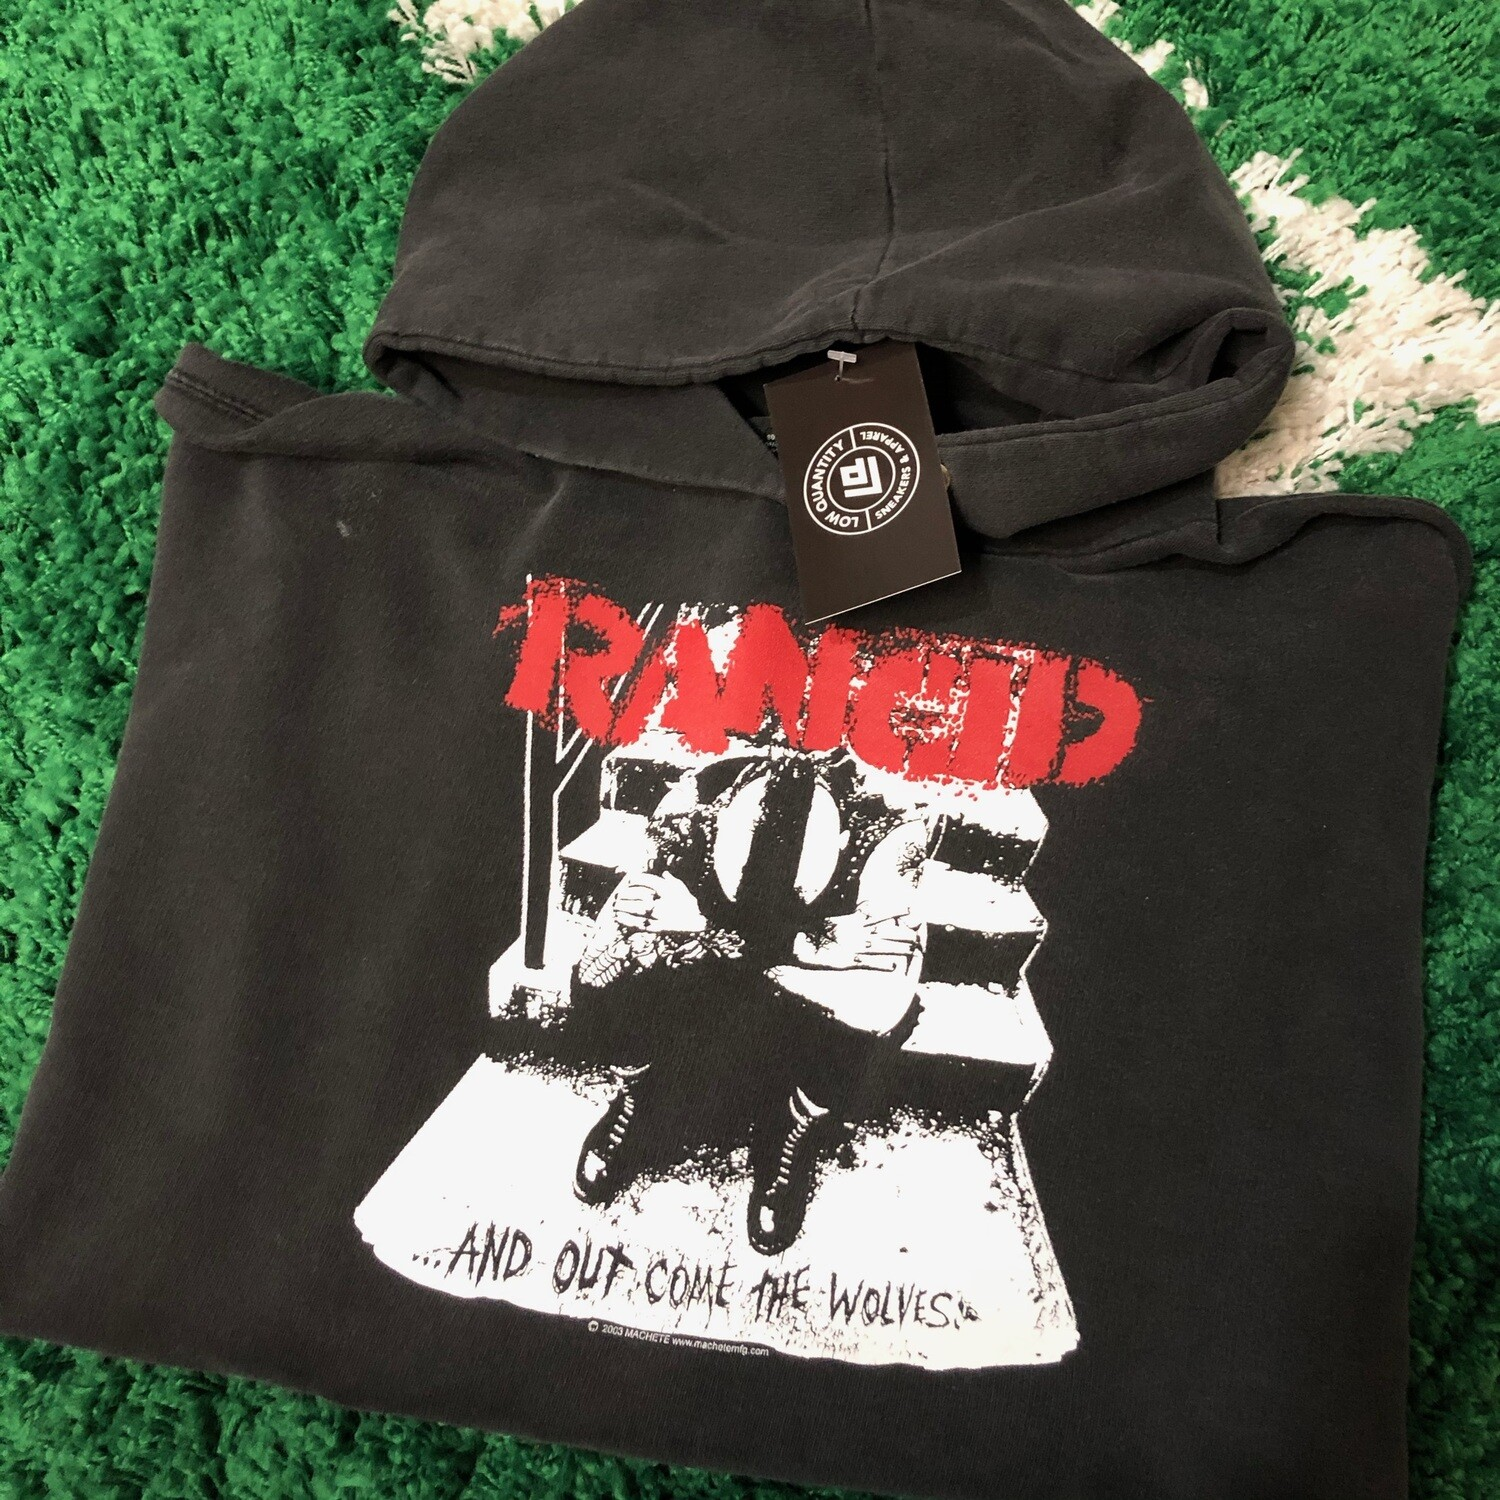 Rancid ...and out come the wolves 2003 Hoodie Size Large